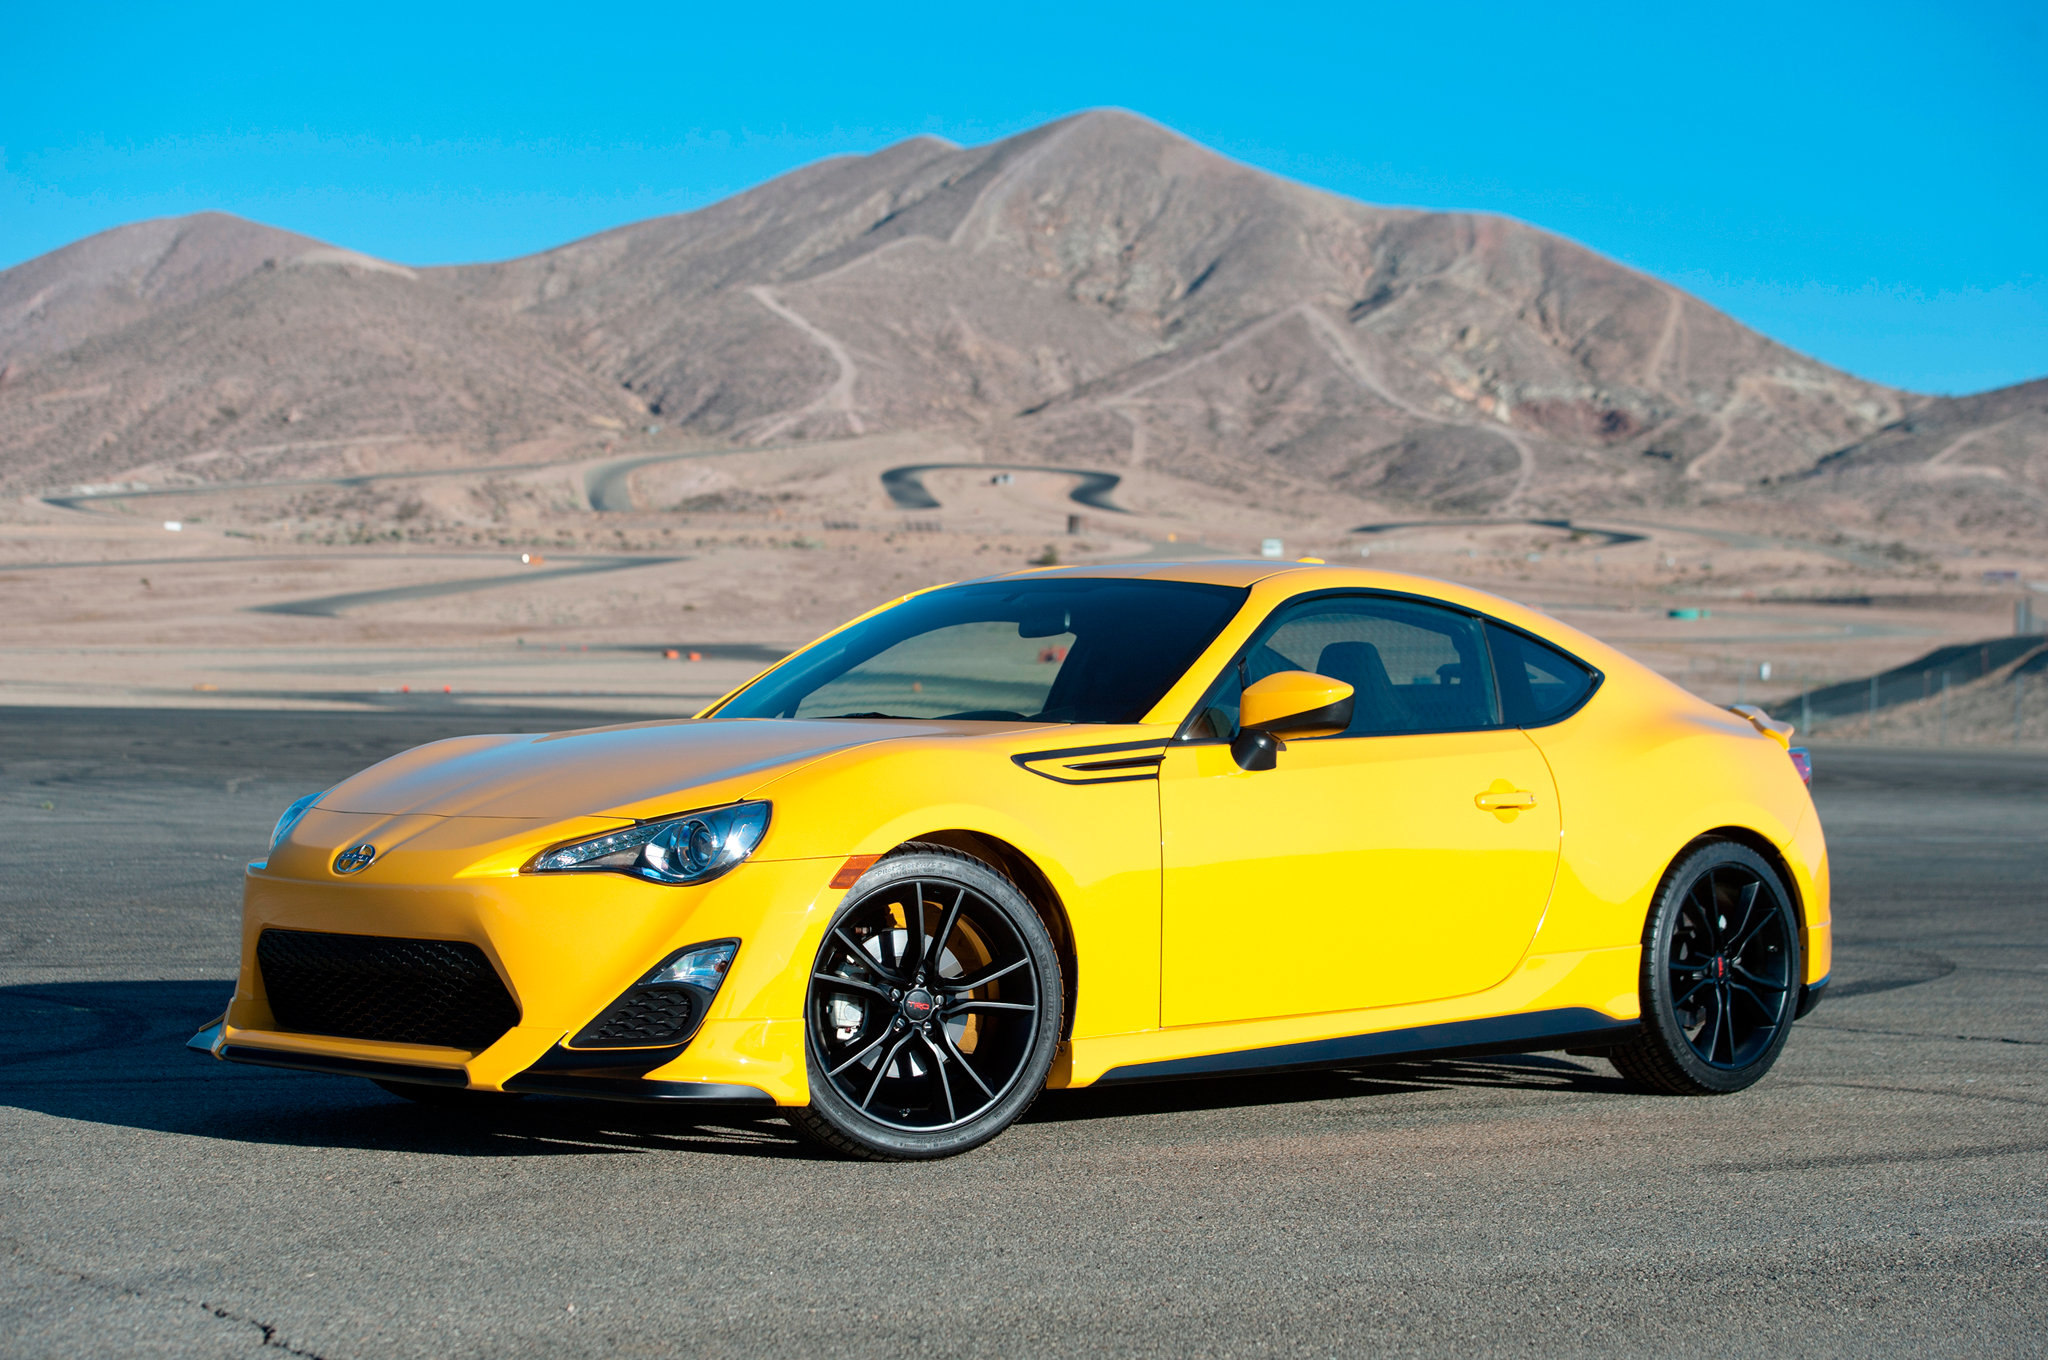 Leaked Dealer Document Reveals 2013 Scion Fr S Prices Starts From